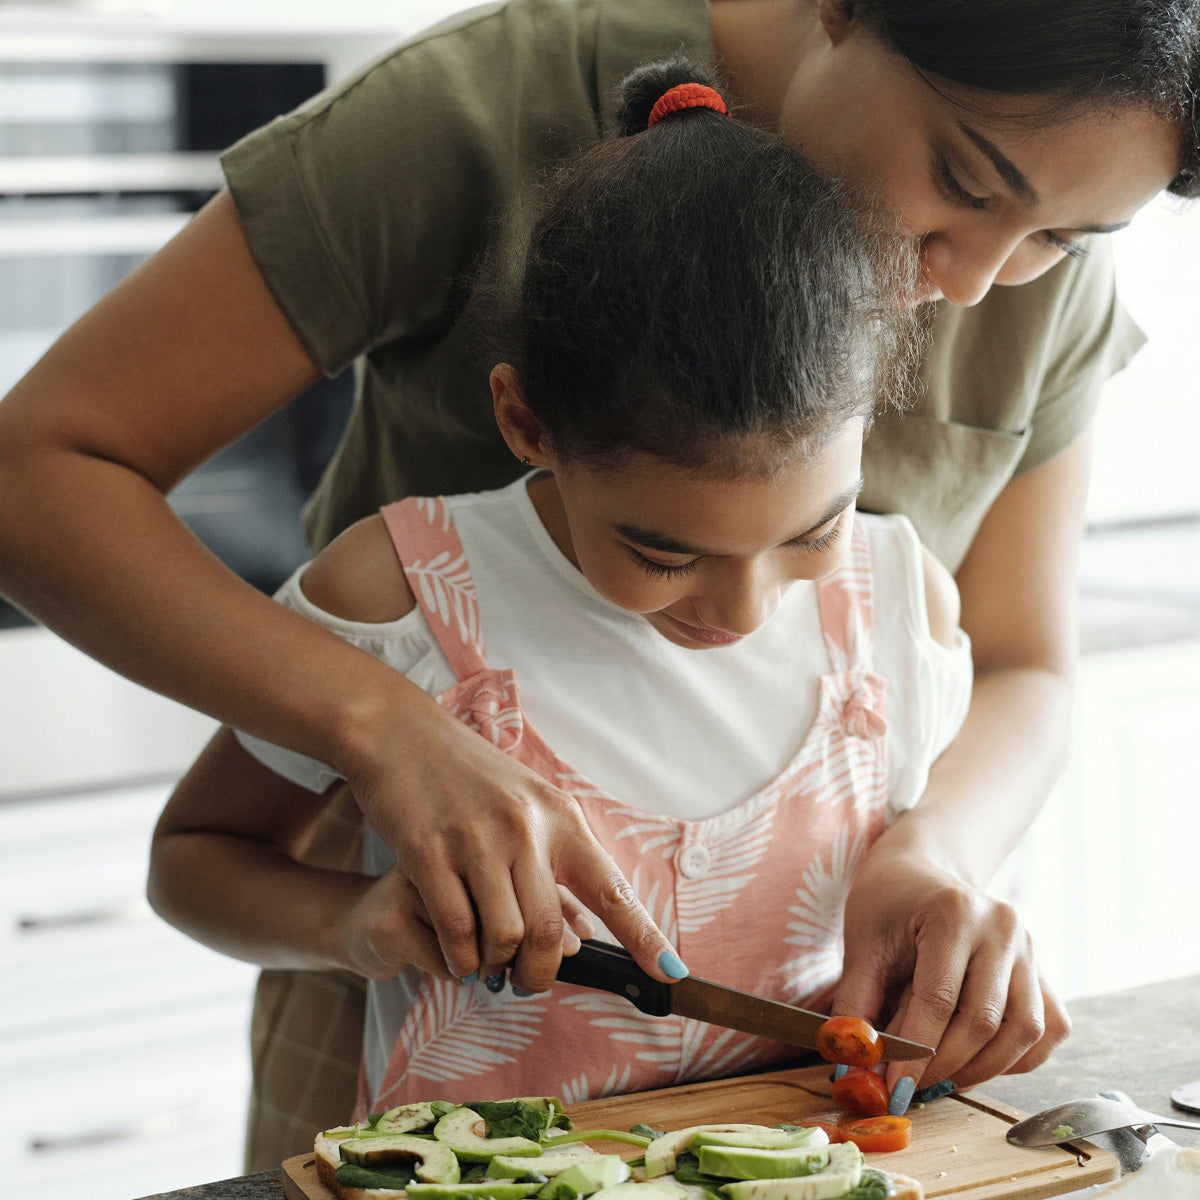 mother and child chopping vegetables in kitchen